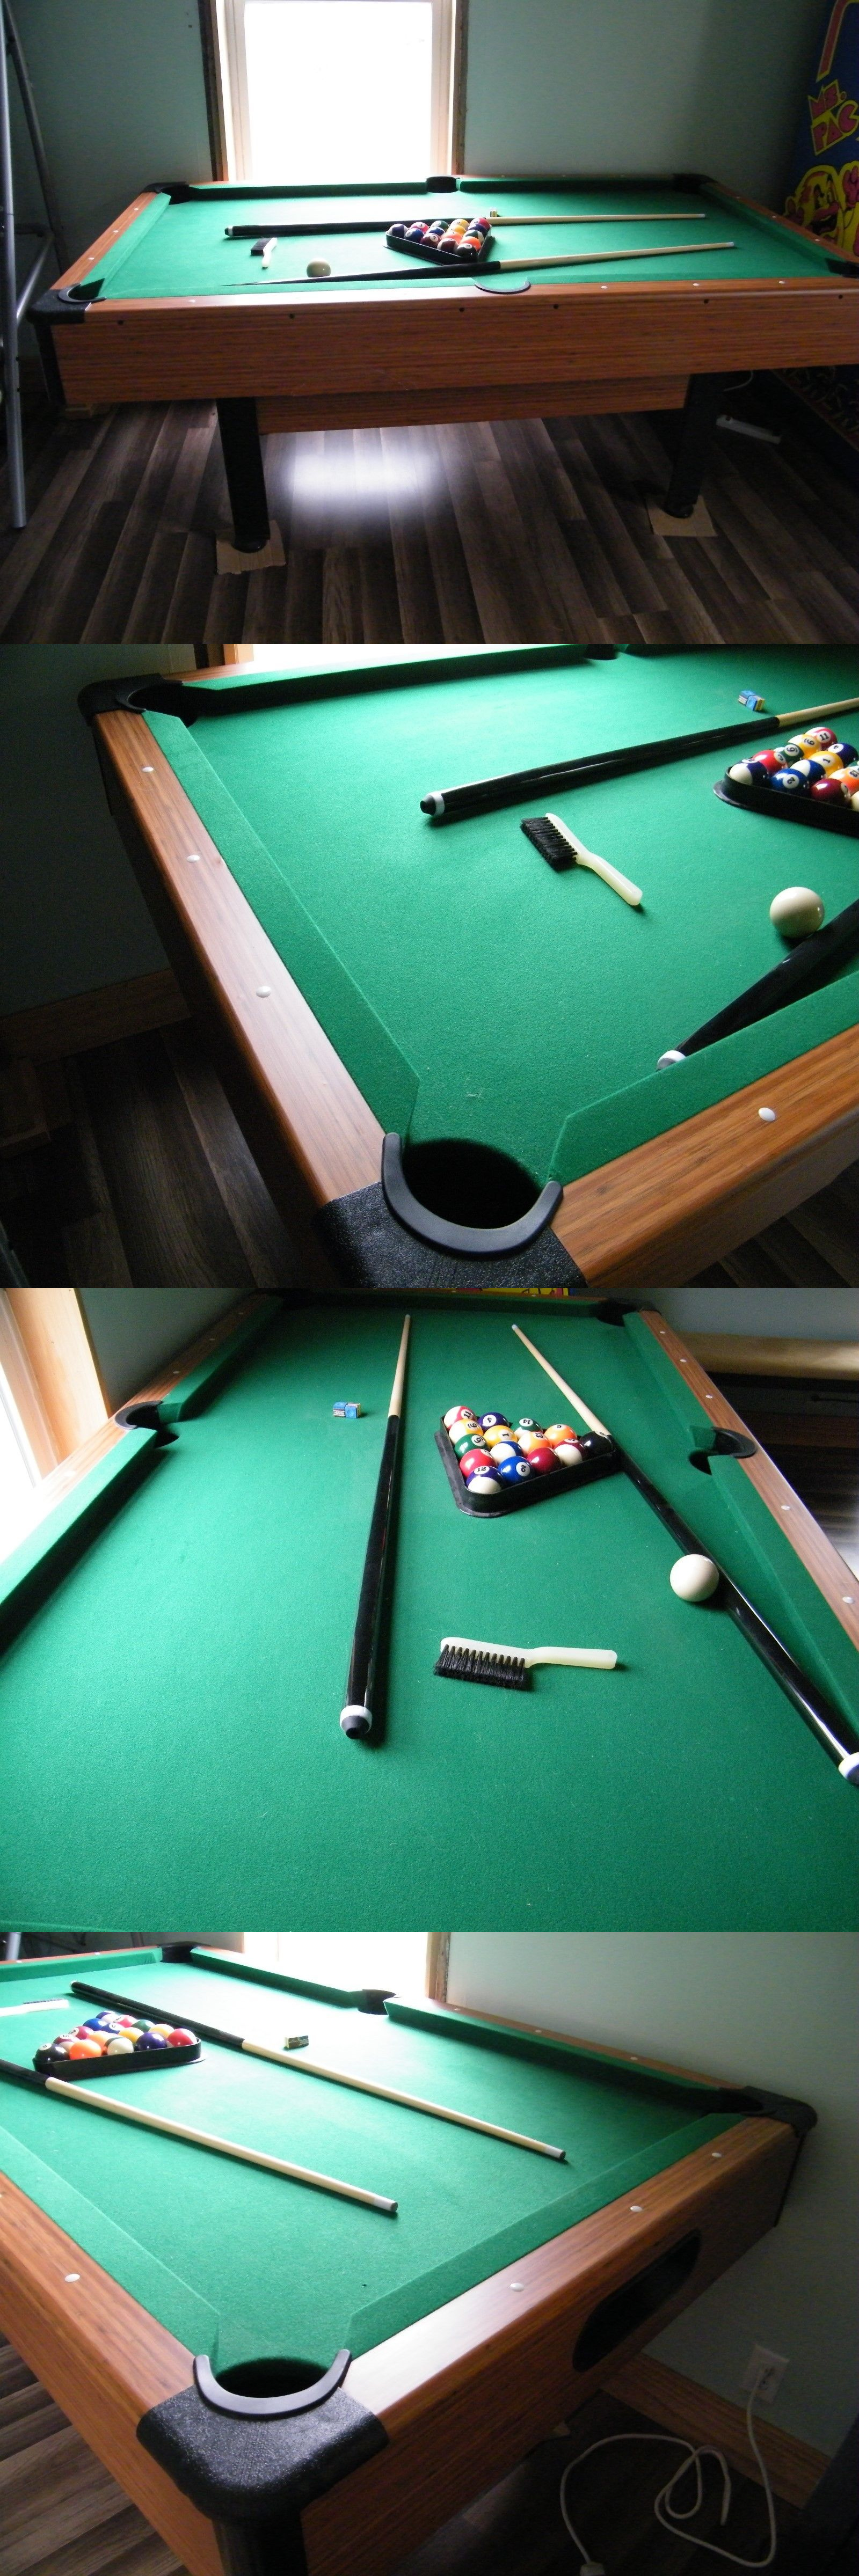 Tables Ft Slate Pool Table Wood Finish Local Pick Up - Pool table pick up